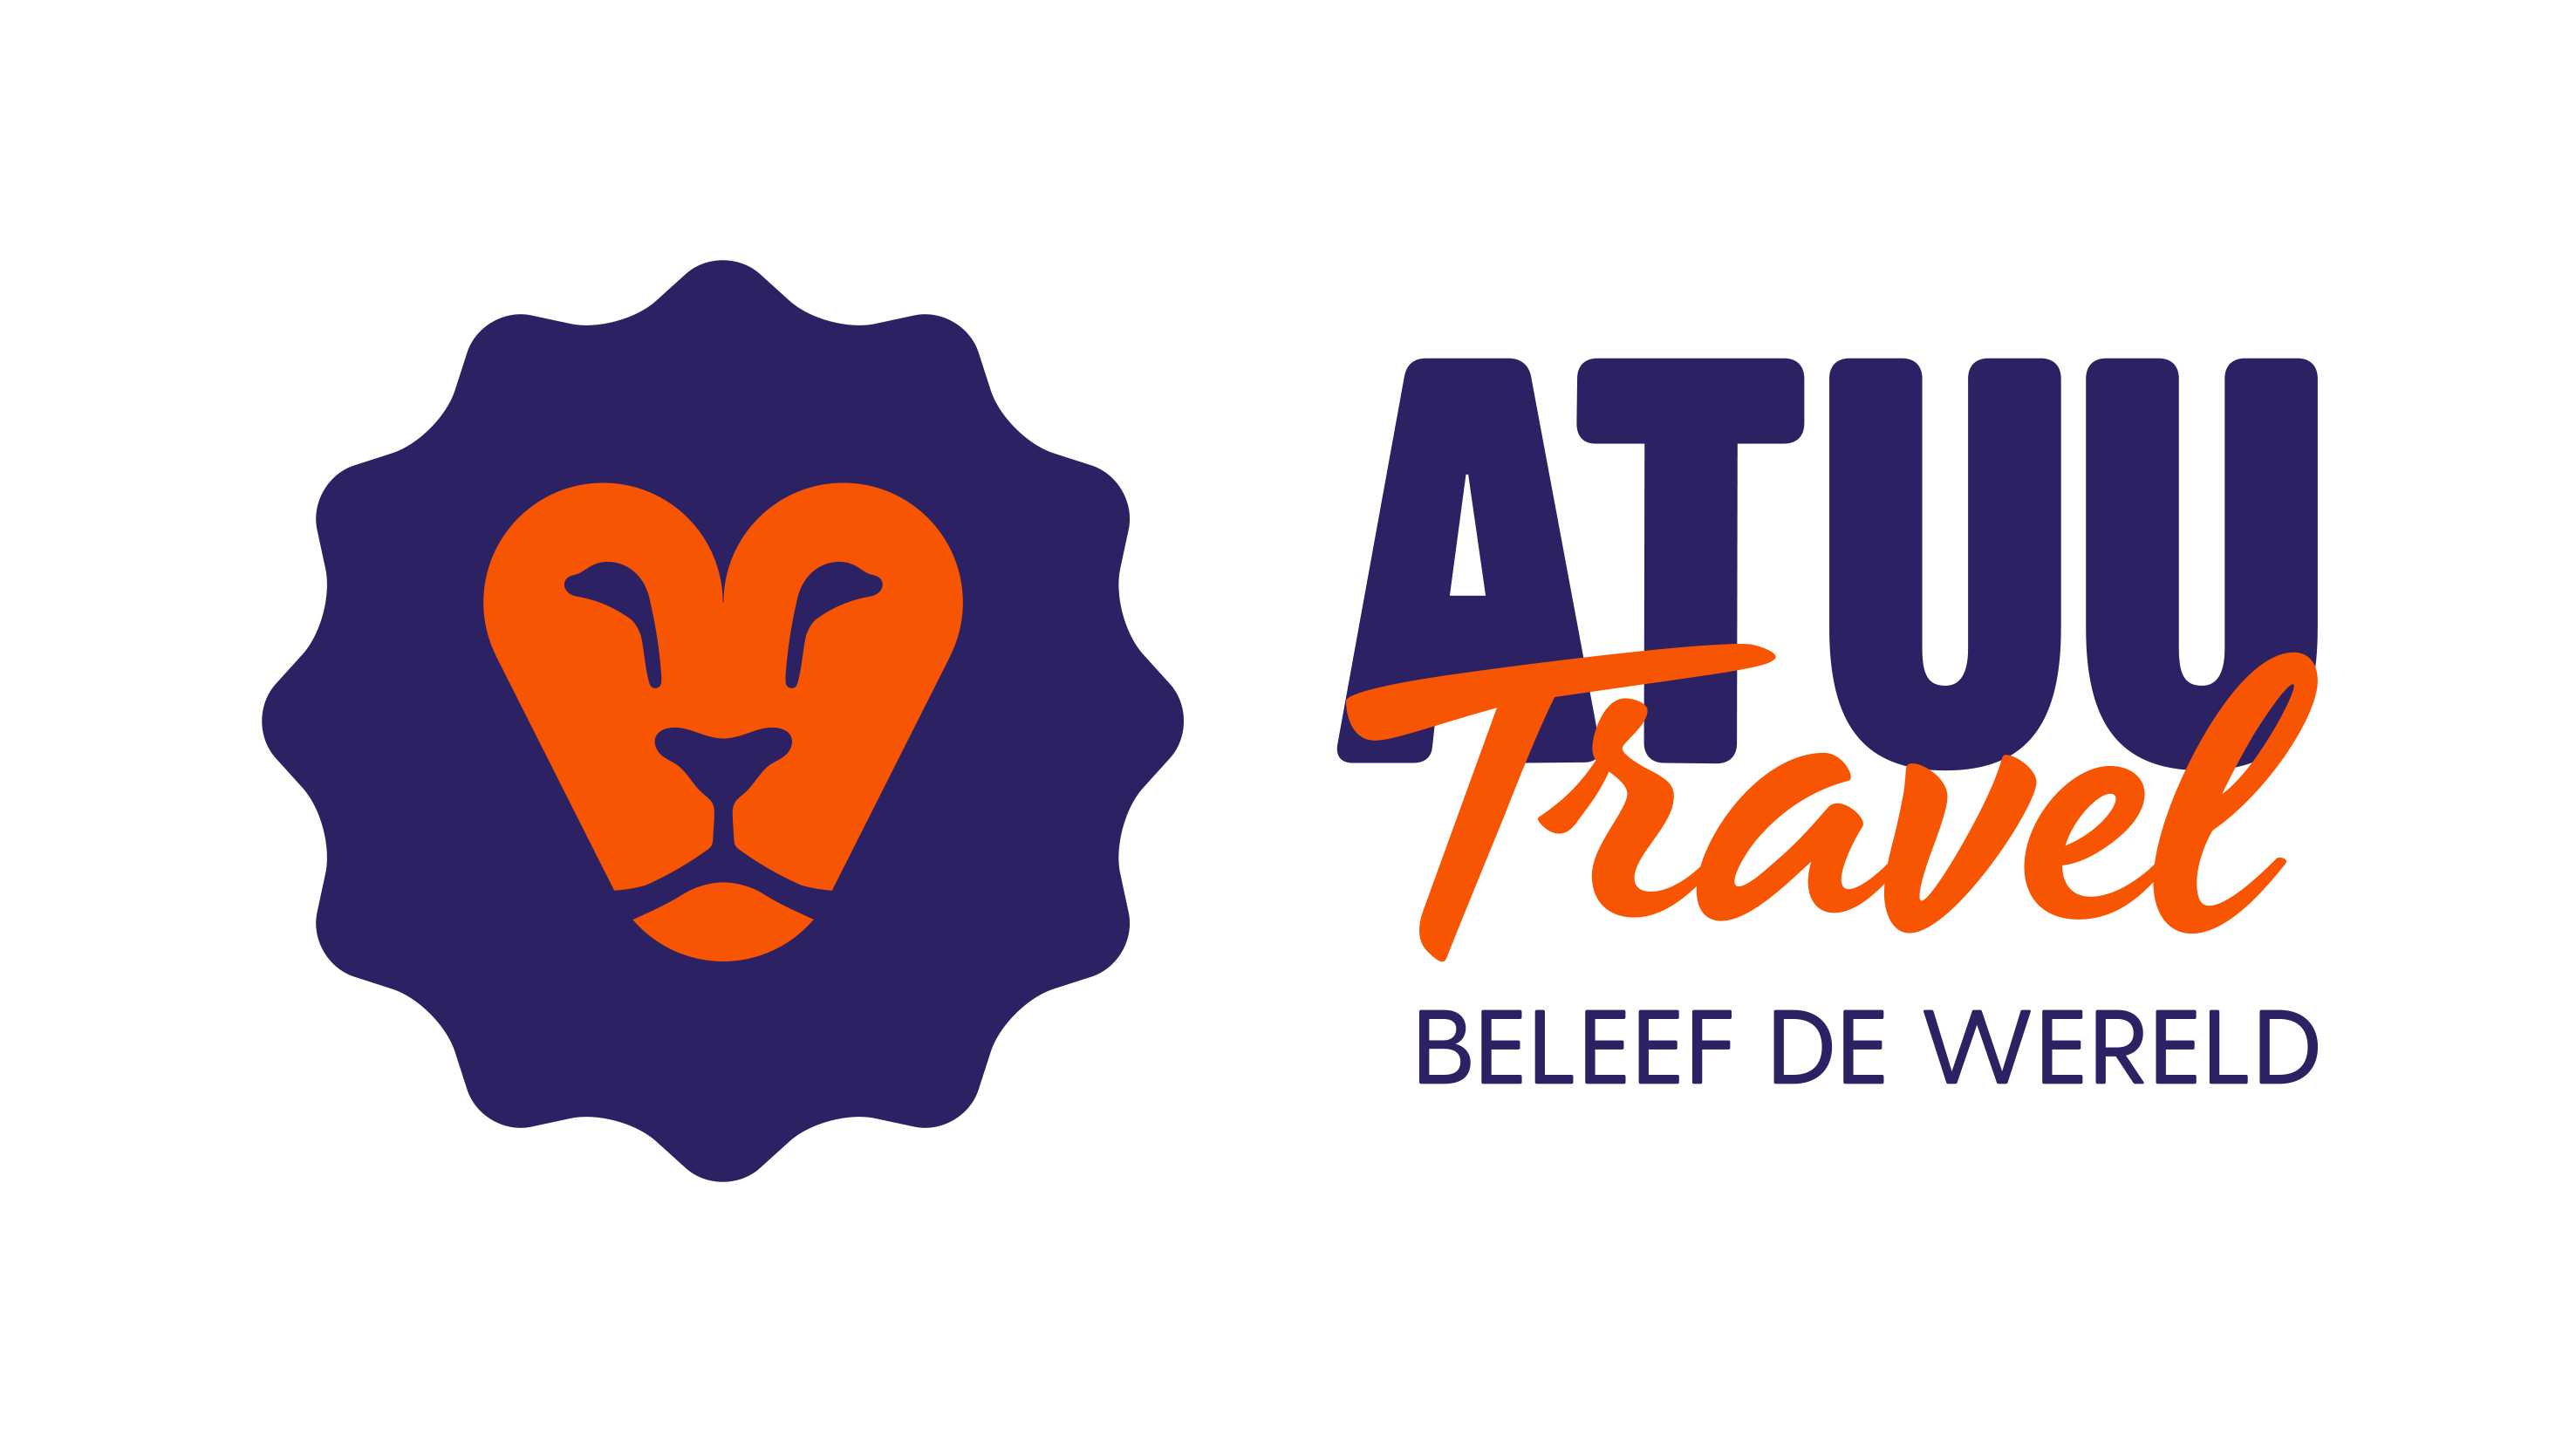 Atuu Travel